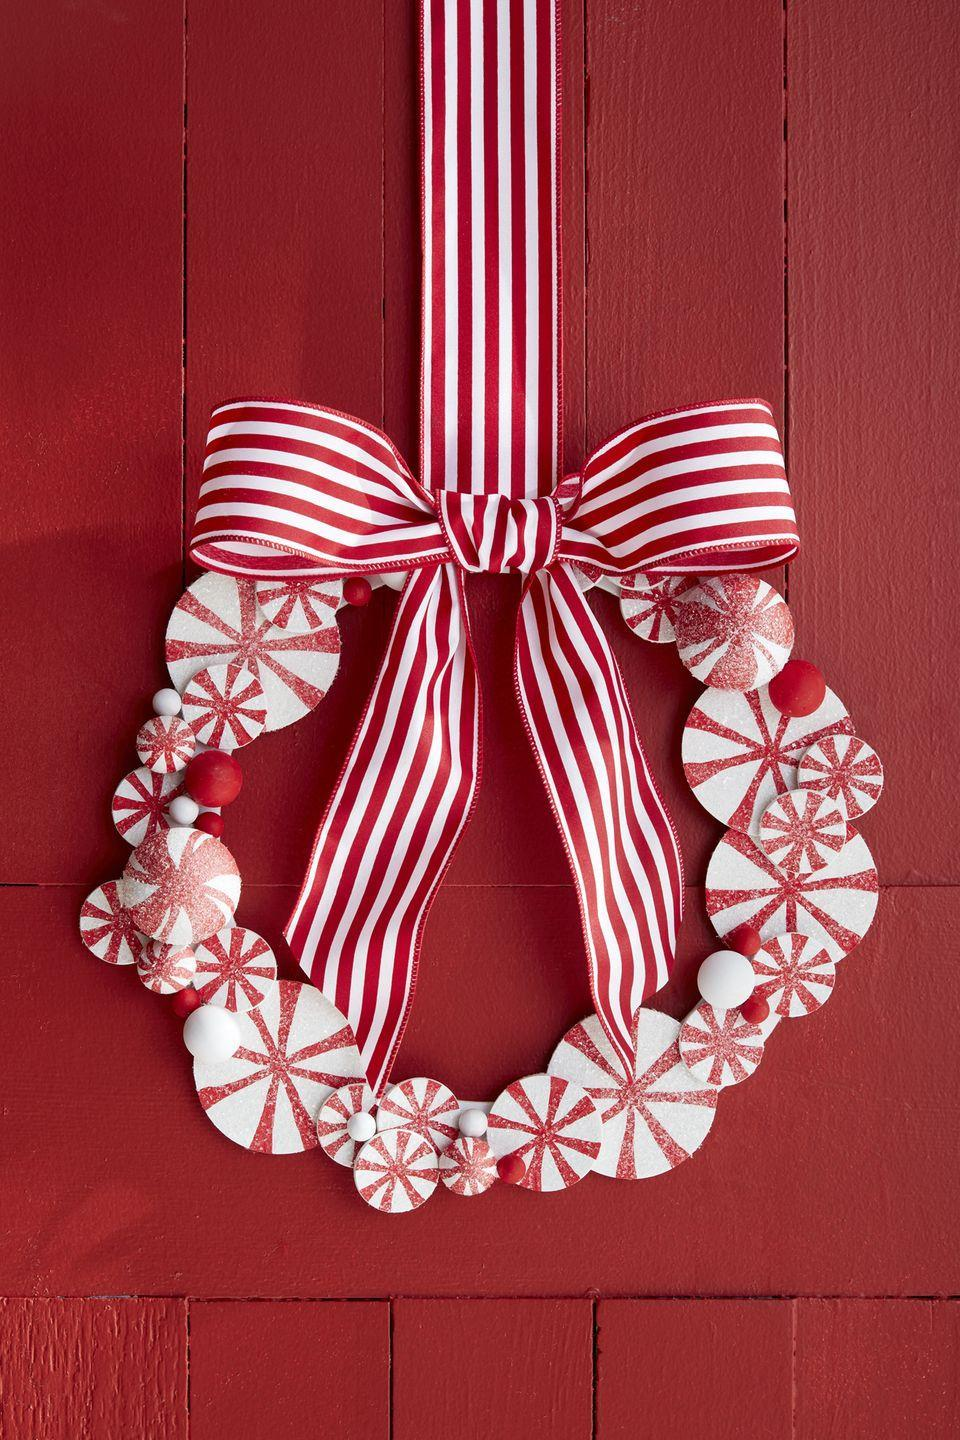 <p>This two-toned wreath, made with painted wooden rounds, striped ribbon, and pom poms, will pop against any front door color (especially red!). </p>